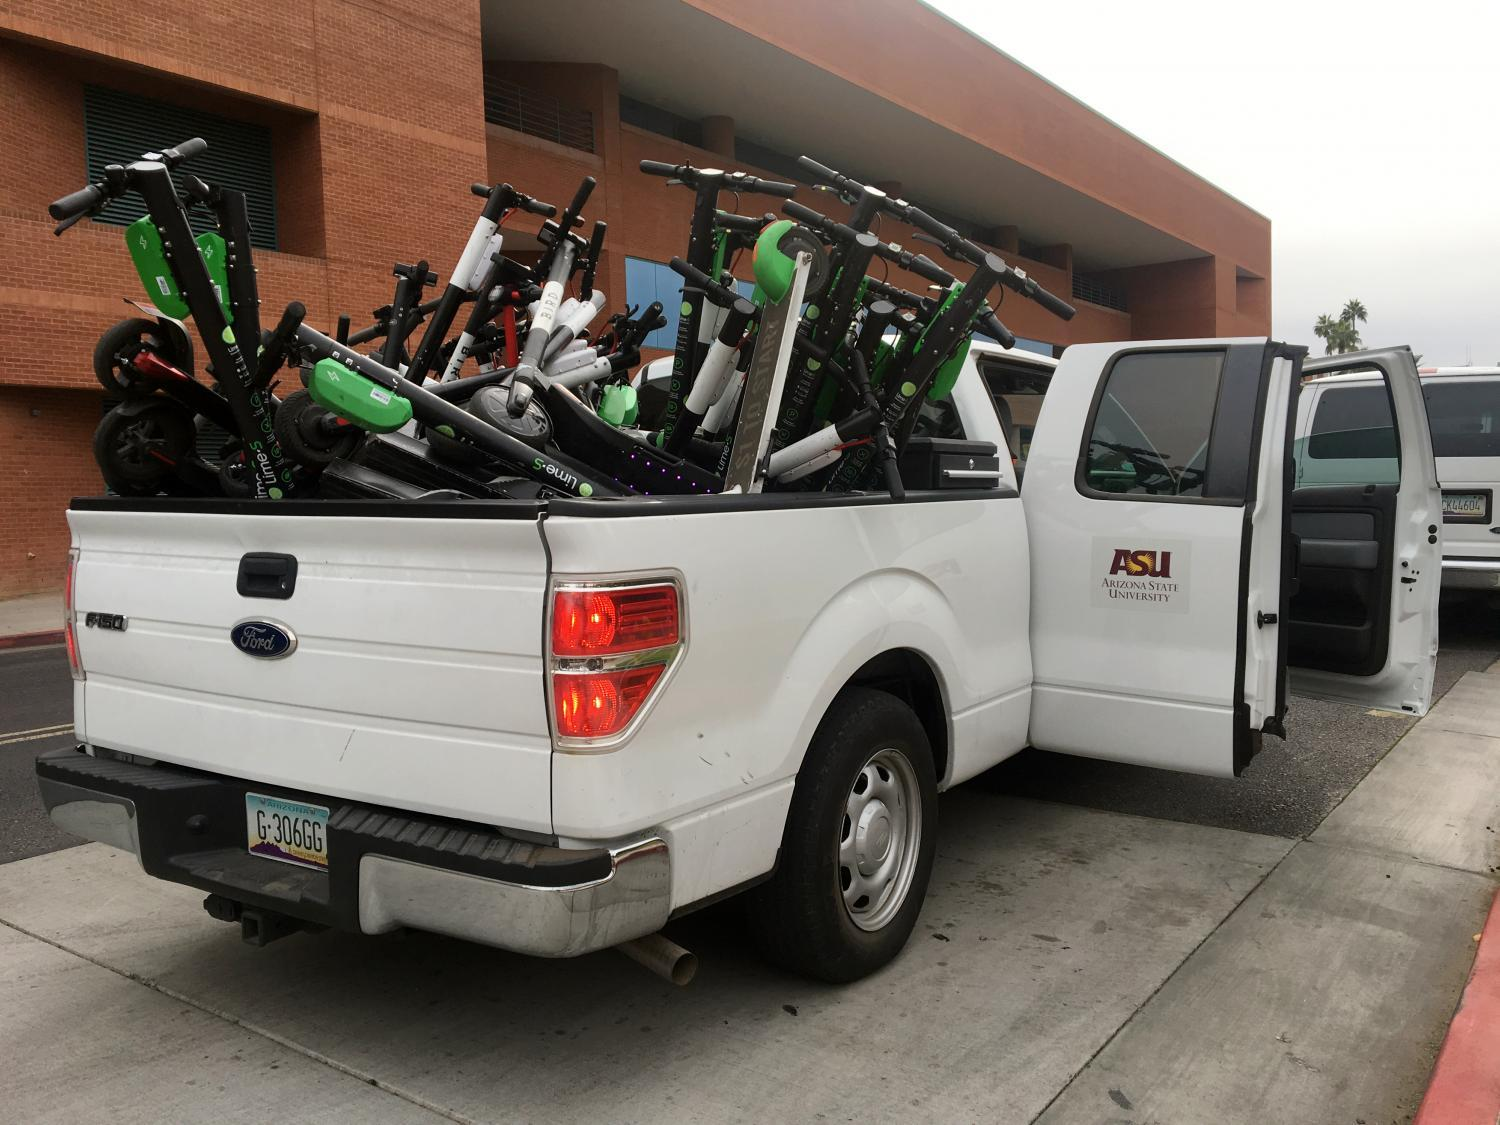 ASU impounded scooters